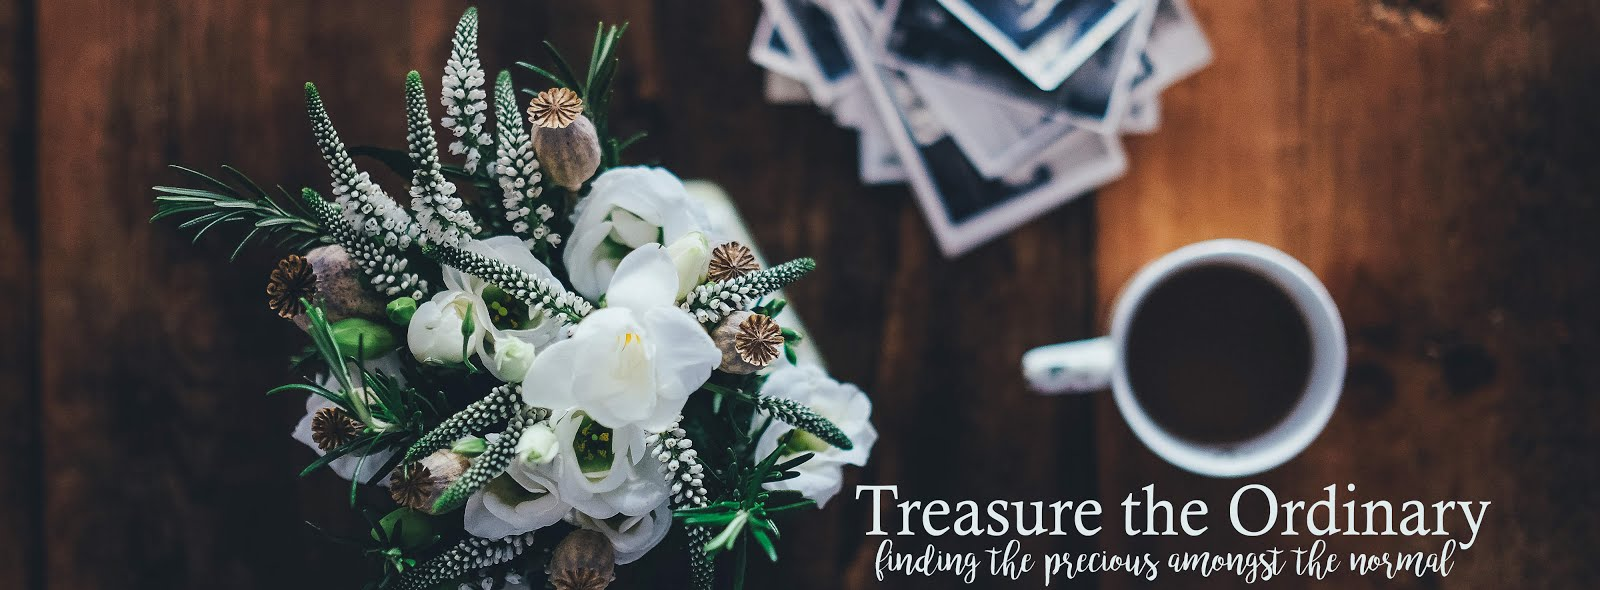 Treasure the Ordinary